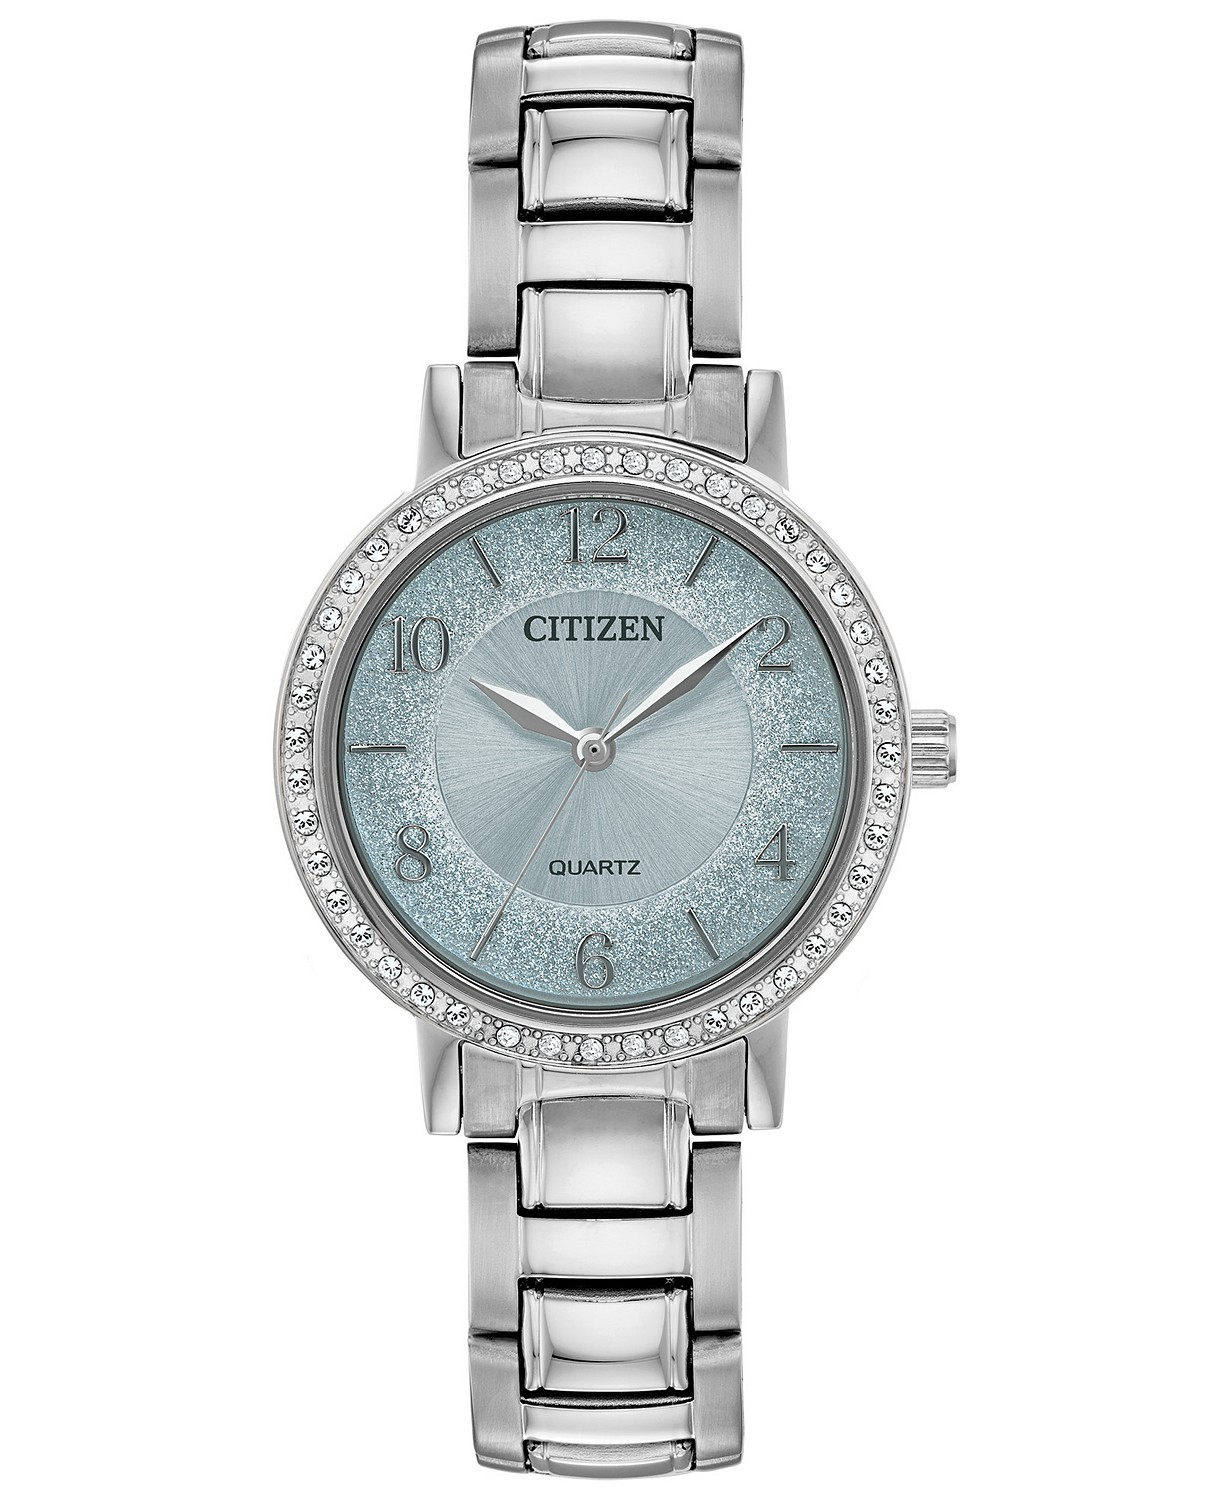 Citizen Women's Quartz Stainless Steel Bracelet Watch 31mm